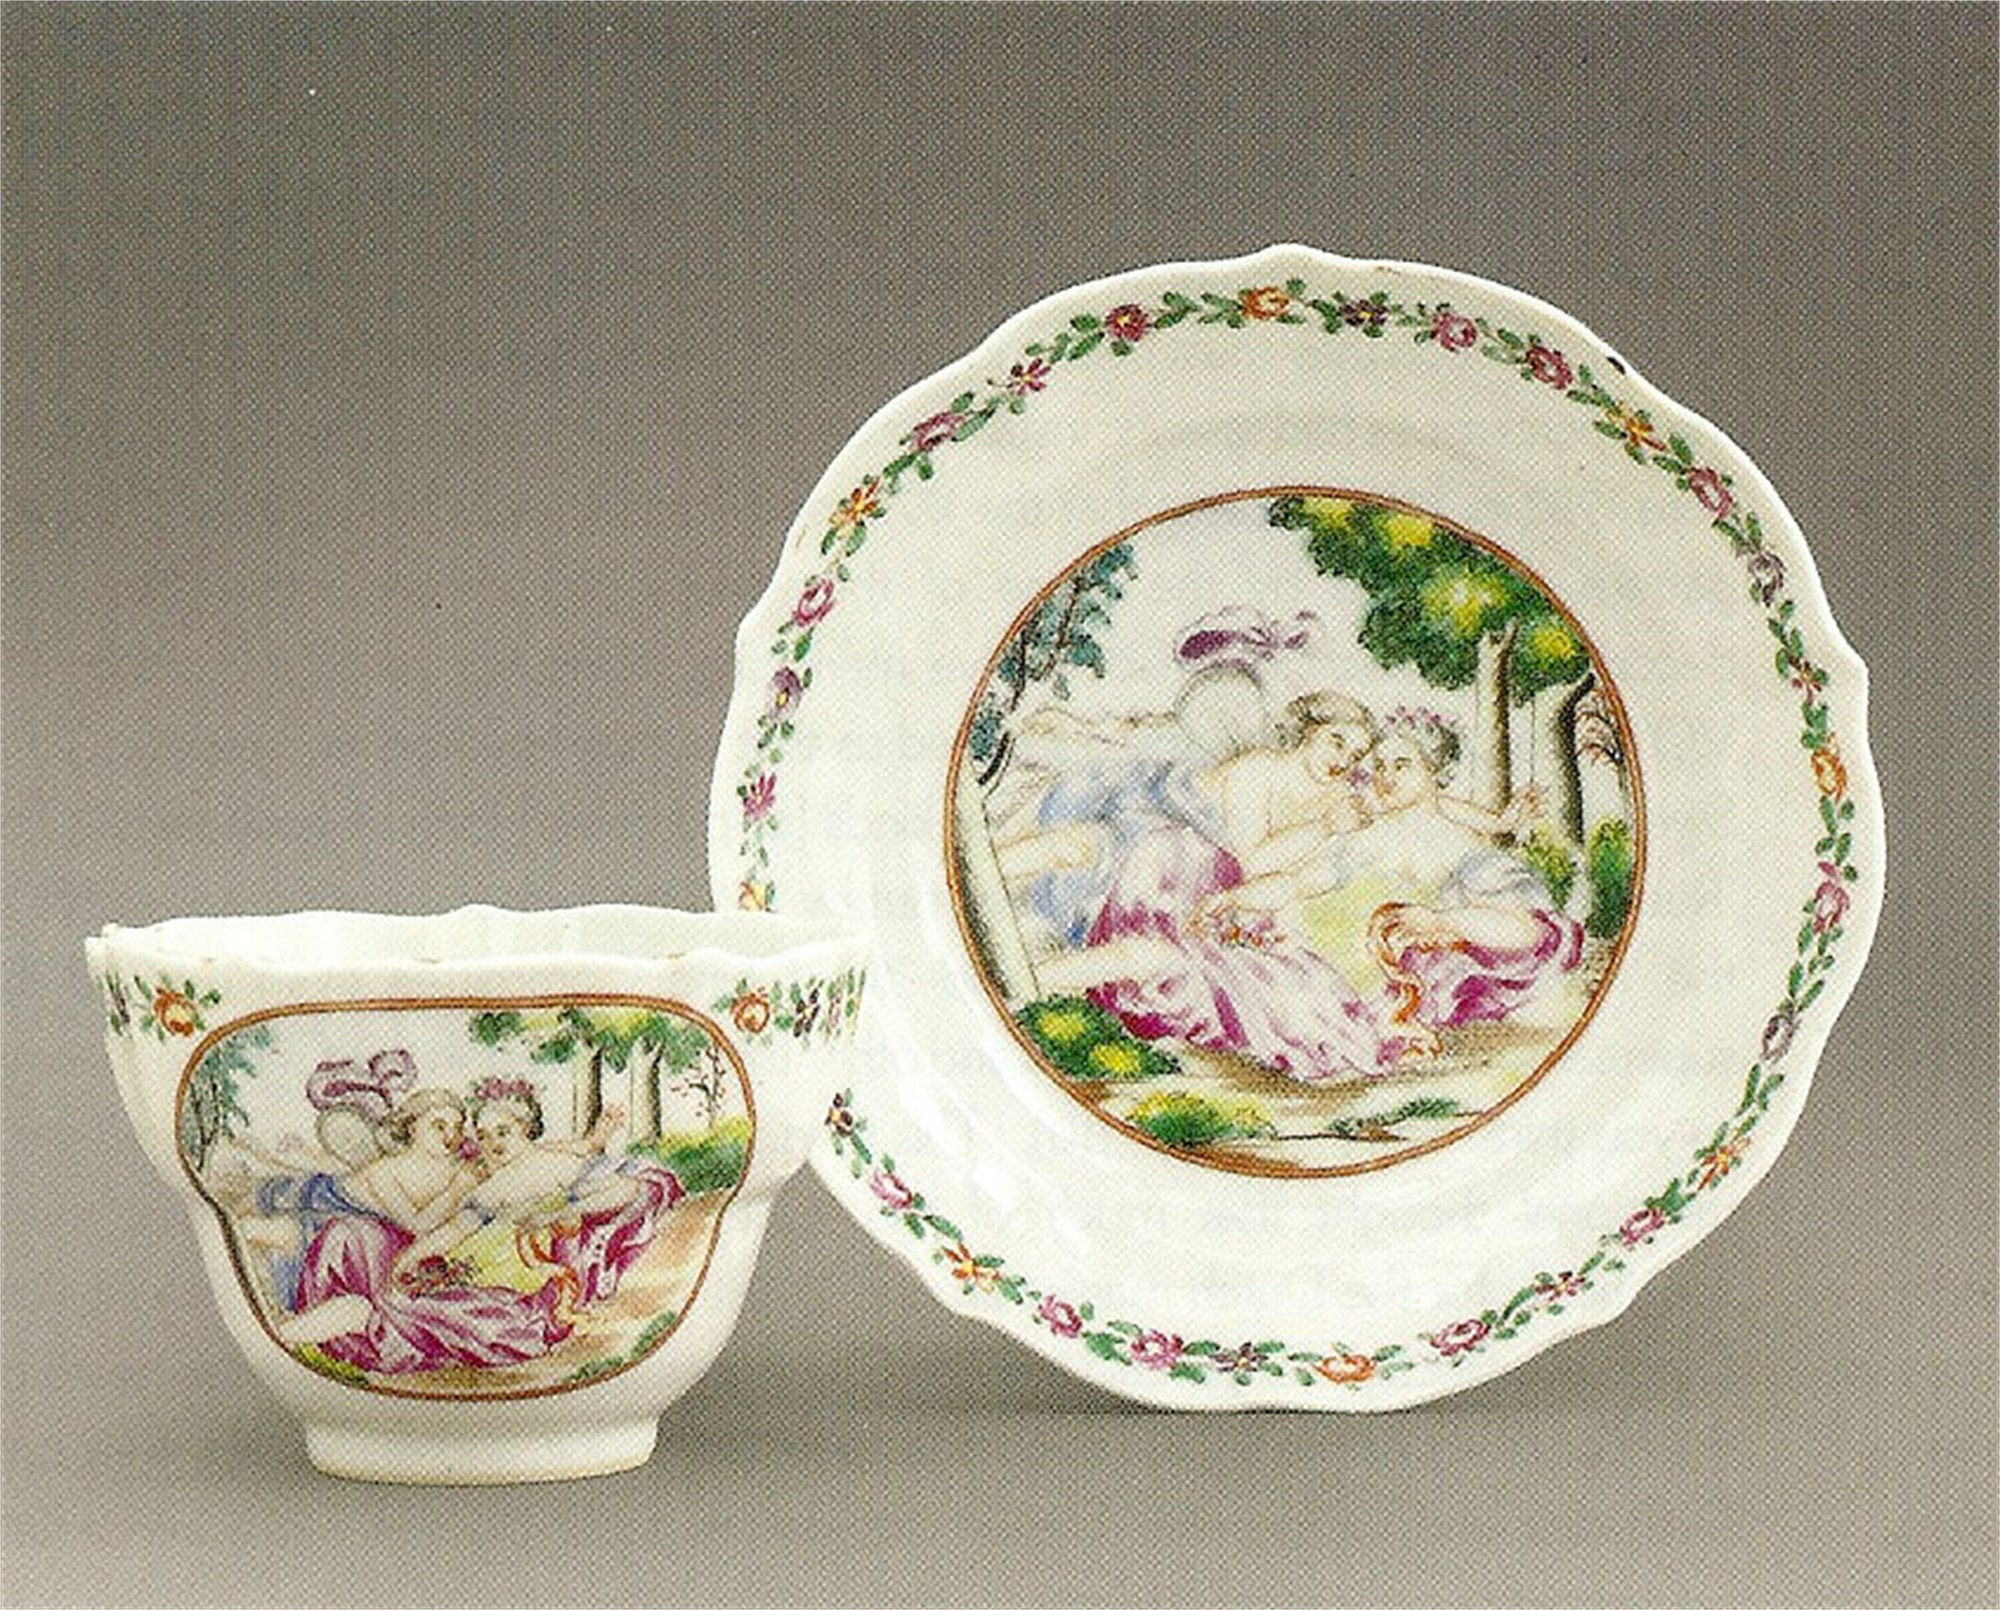 LARGE FAMILLE ROSE TEACUP AND SAUCER WITH CUPID AN PSYCHE